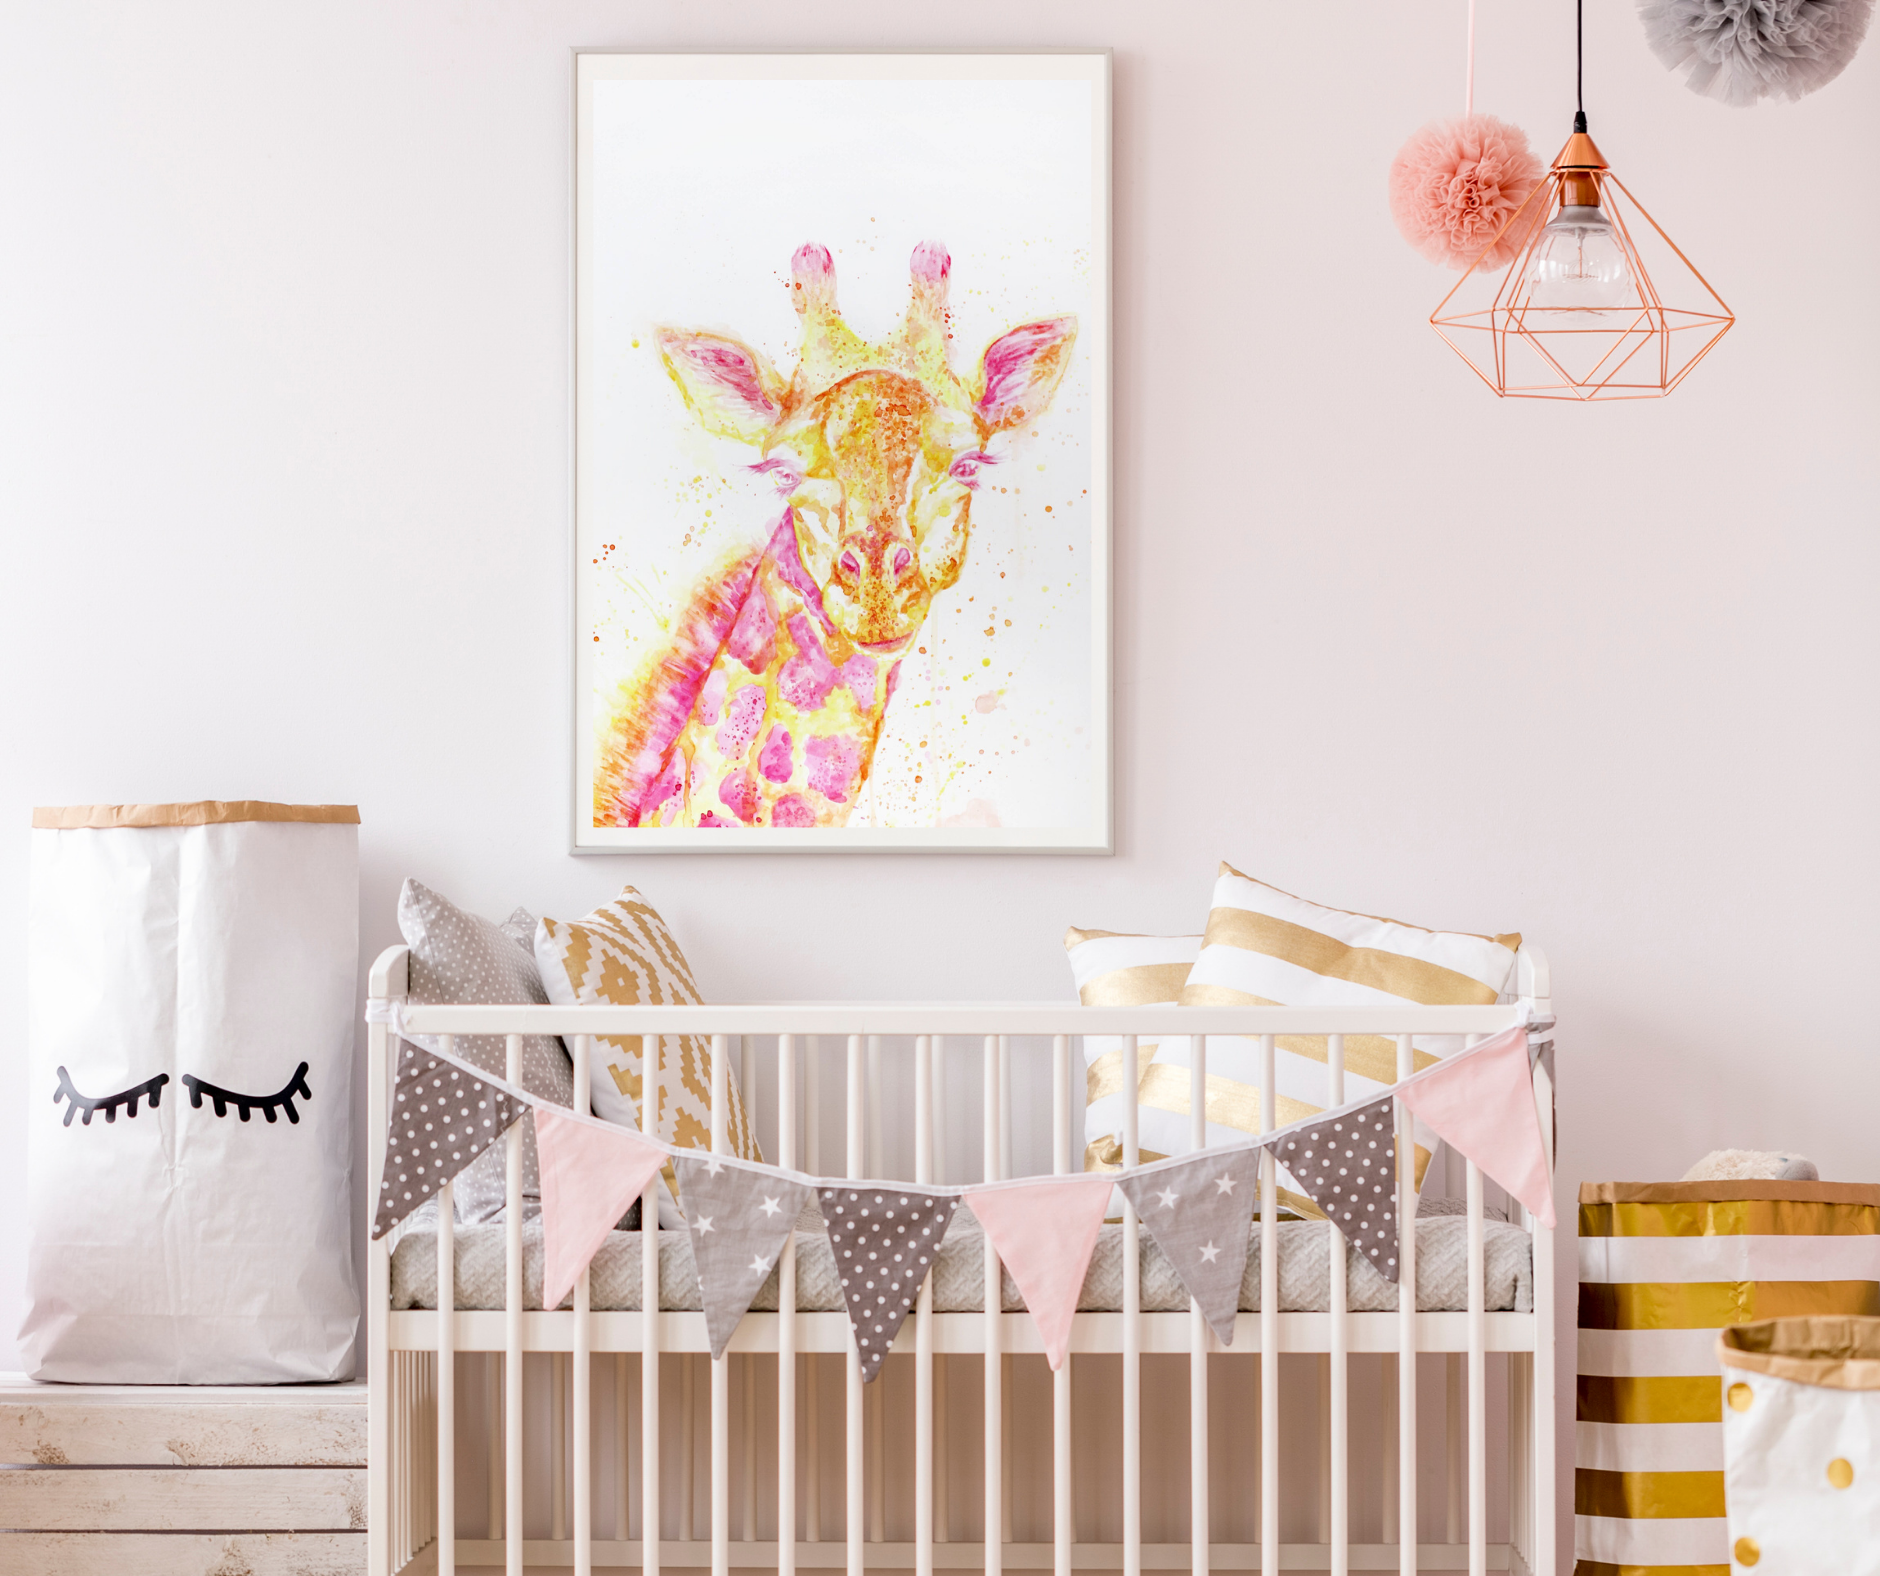 Watercolor painting of giraffe, delicate watercolor art for little girl's room